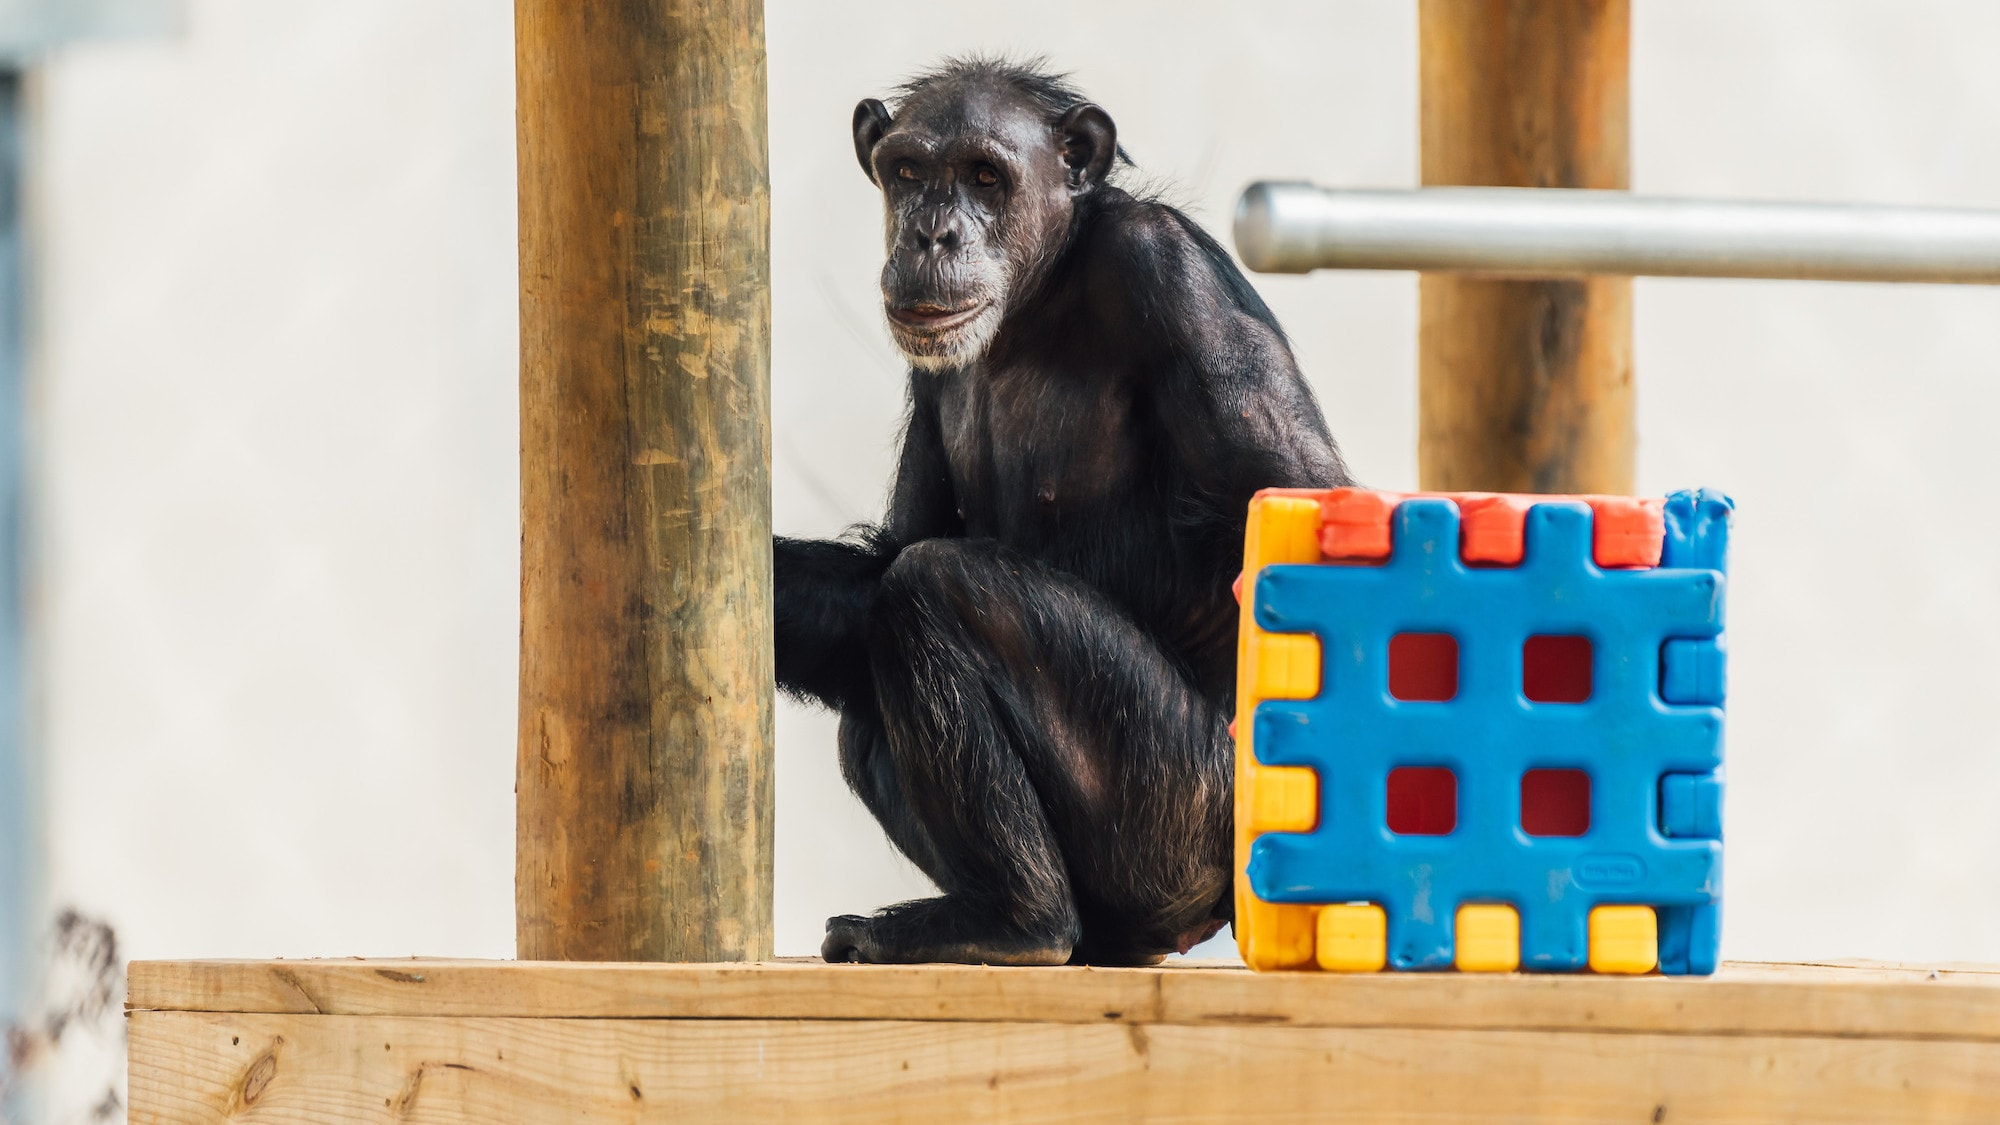 India sits on a wooden platform, holding onto the post. Sparky's group. (Karalee Scouten/Chimp Haven)